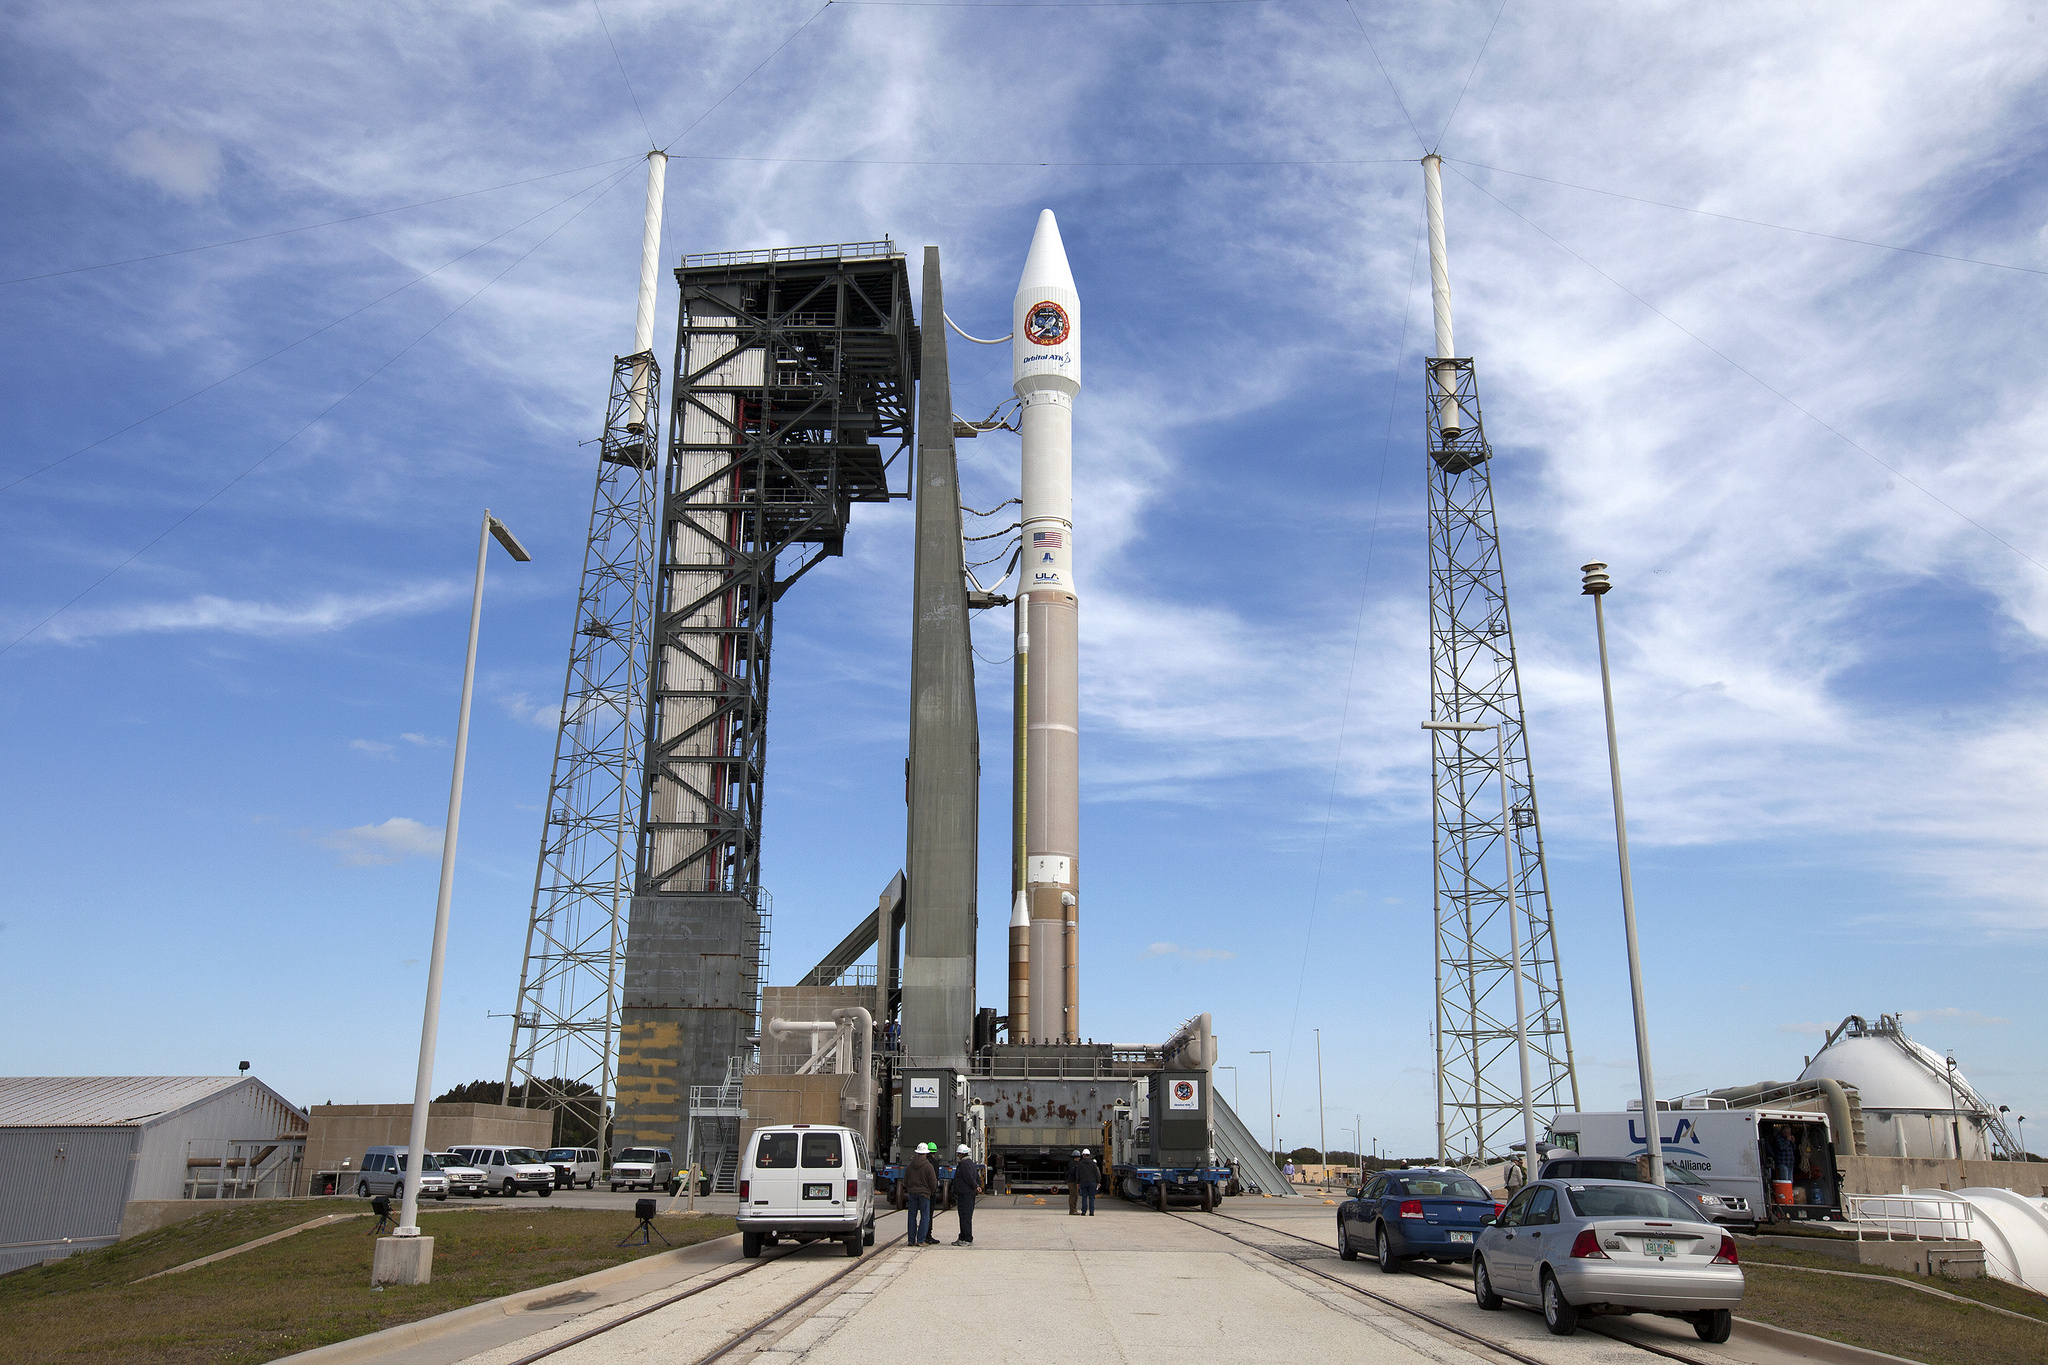 A United Launch Alliance Atlas V rocket will launch an unmanned Orbital ATK Cygnus spacecraft from Florida's Cape Canaveral Air Force Station on March 22, 2016 to deliver nearly 3.5 tons of supplies for astronauts on the International Space Station.